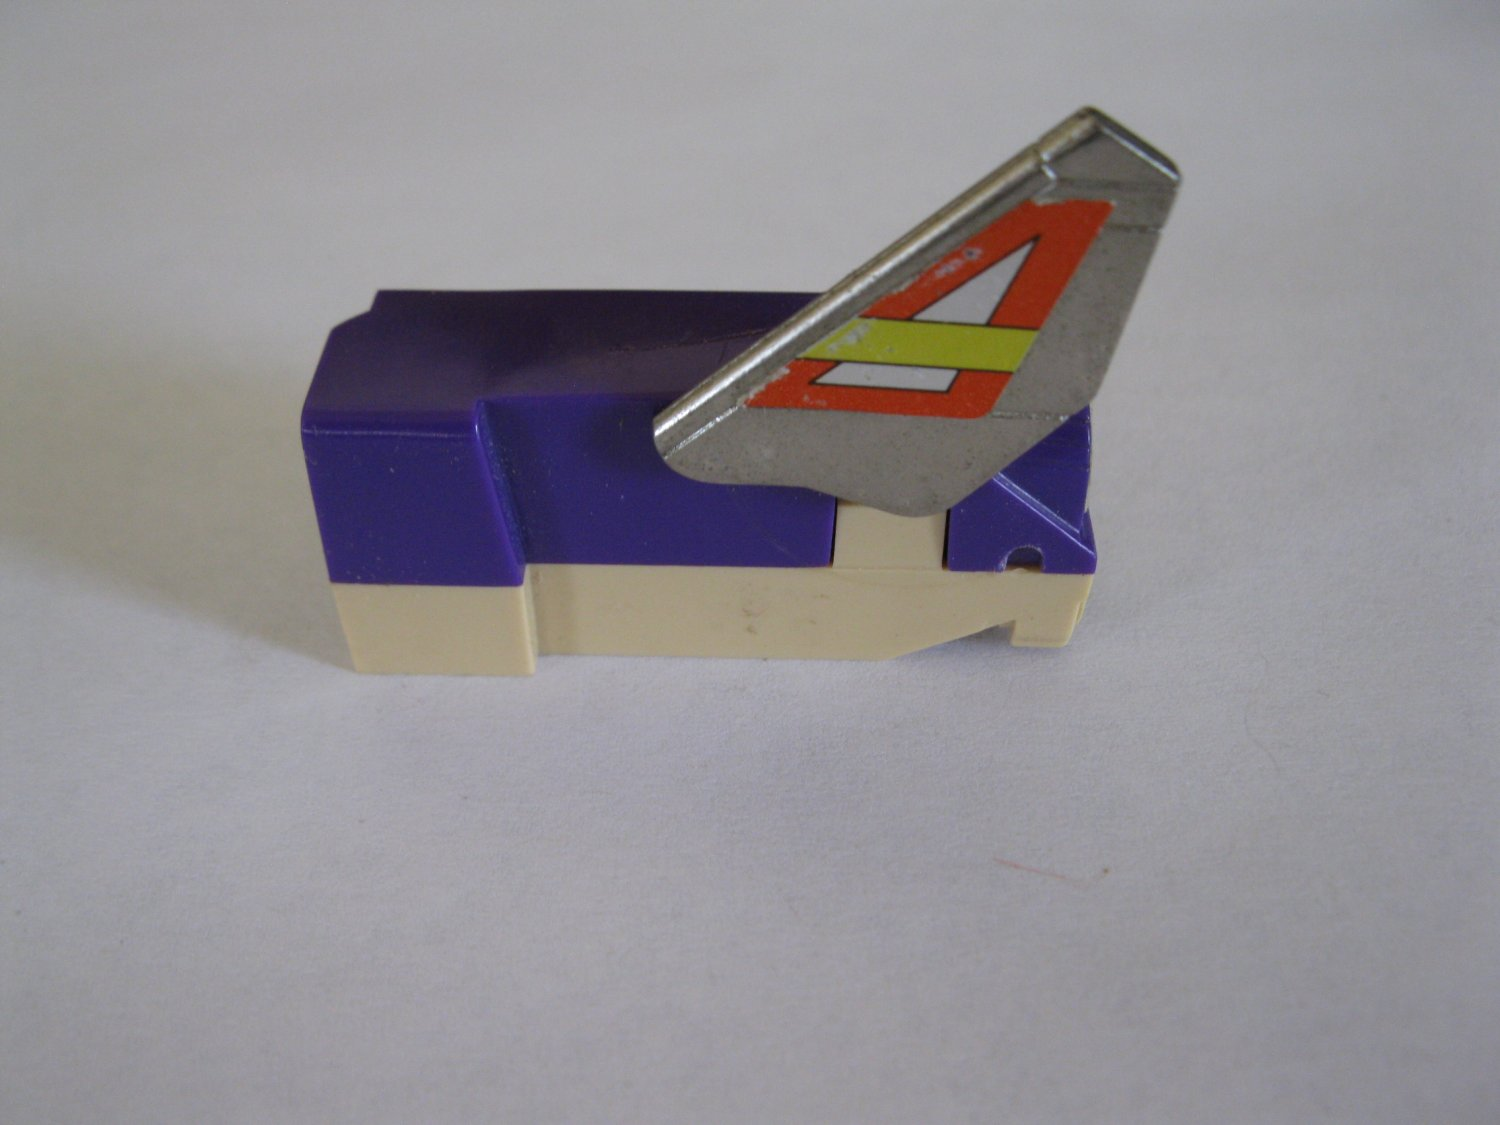 G1 Transformers Action figure part: 1985 Blitzwing - Right Foot